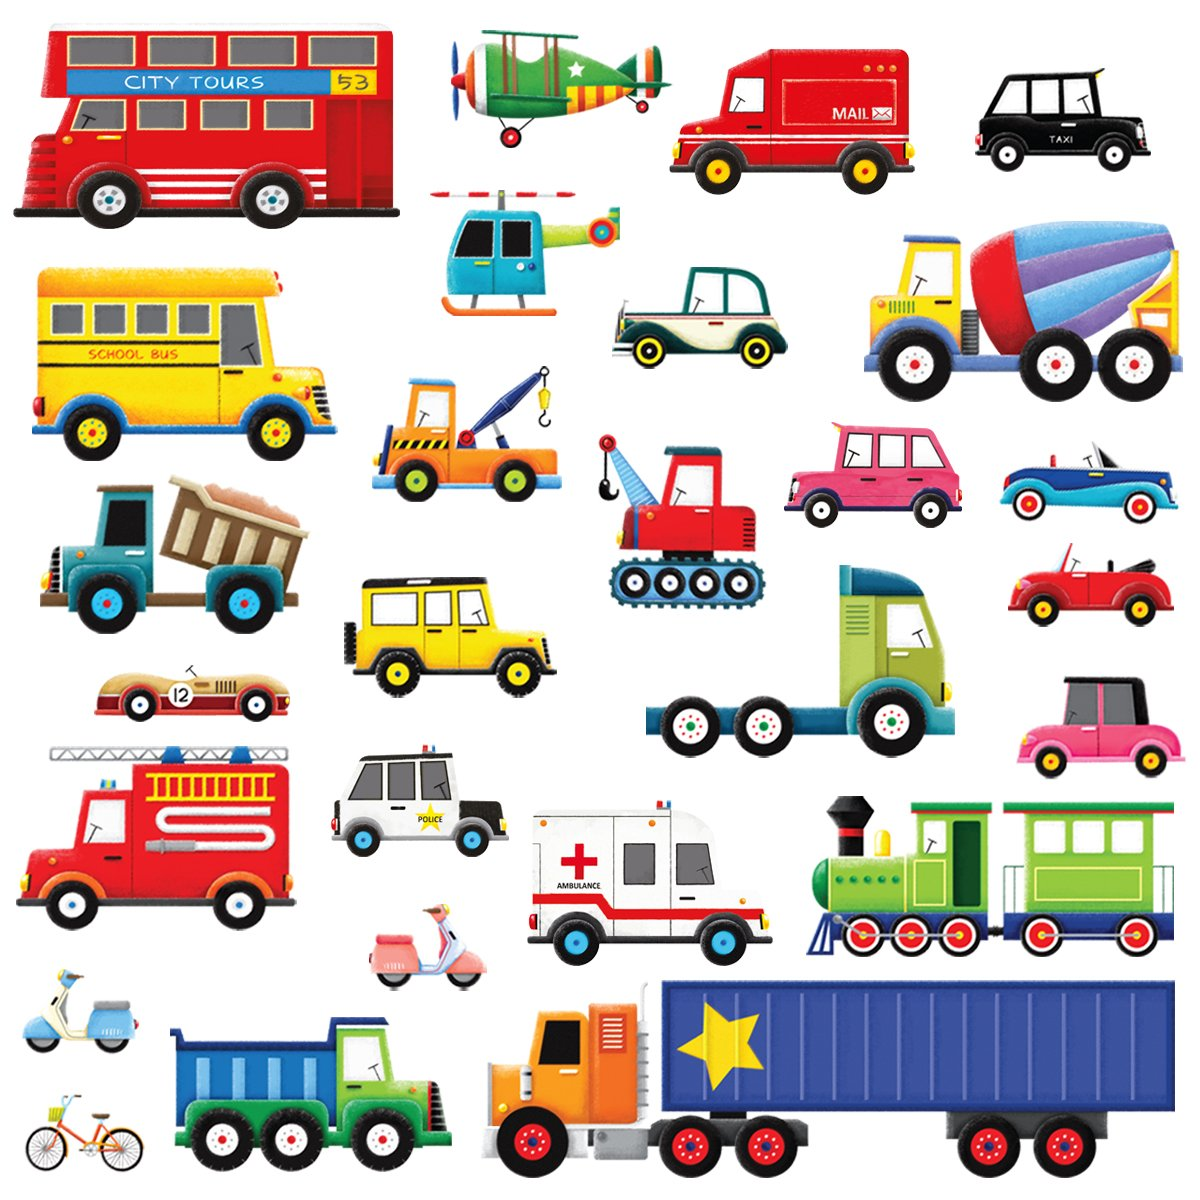 Amazon decowall dw 1204 10 transports and roads kids wall decowall dw 1605 27 transports kids wall decals wall stickers peel and stick removable wall amipublicfo Images